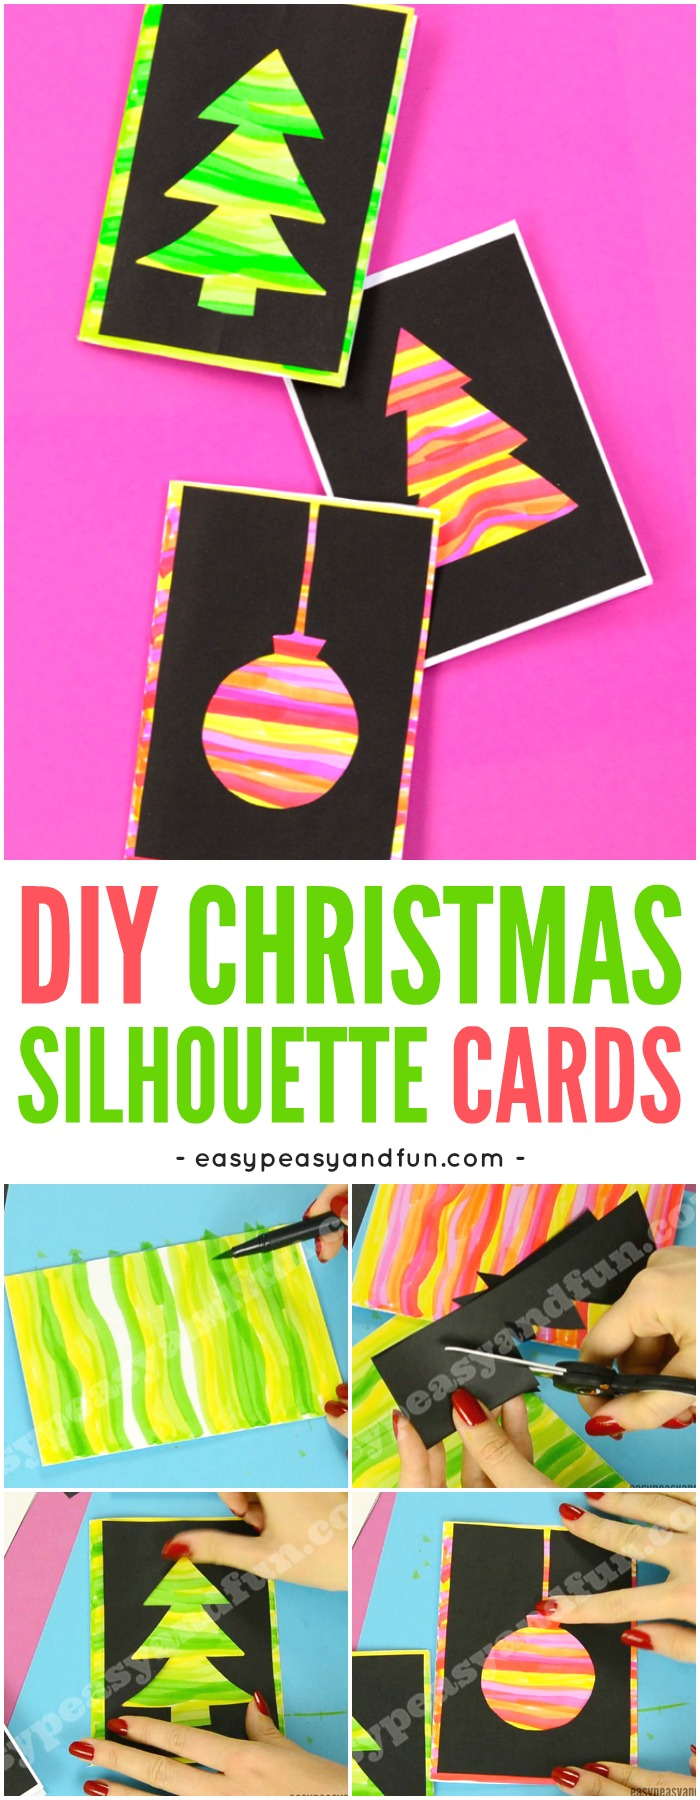 diy silhouette christmas cards diy silhouette cards easy peasy and 4262